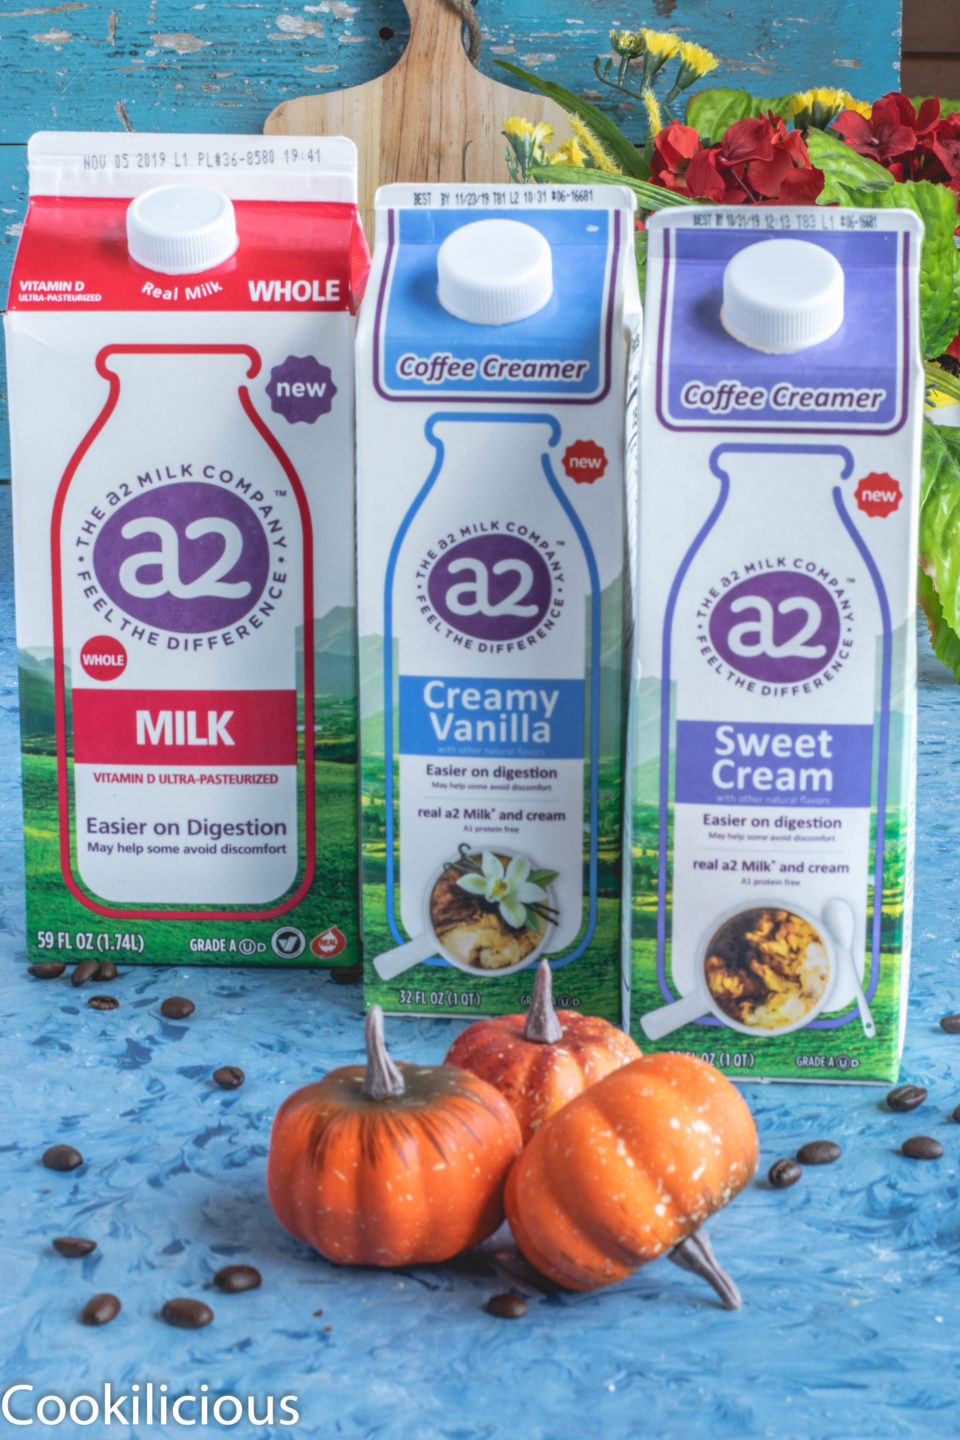 1 a2 milk carton and 2 a2 milk creamer placed next to each other